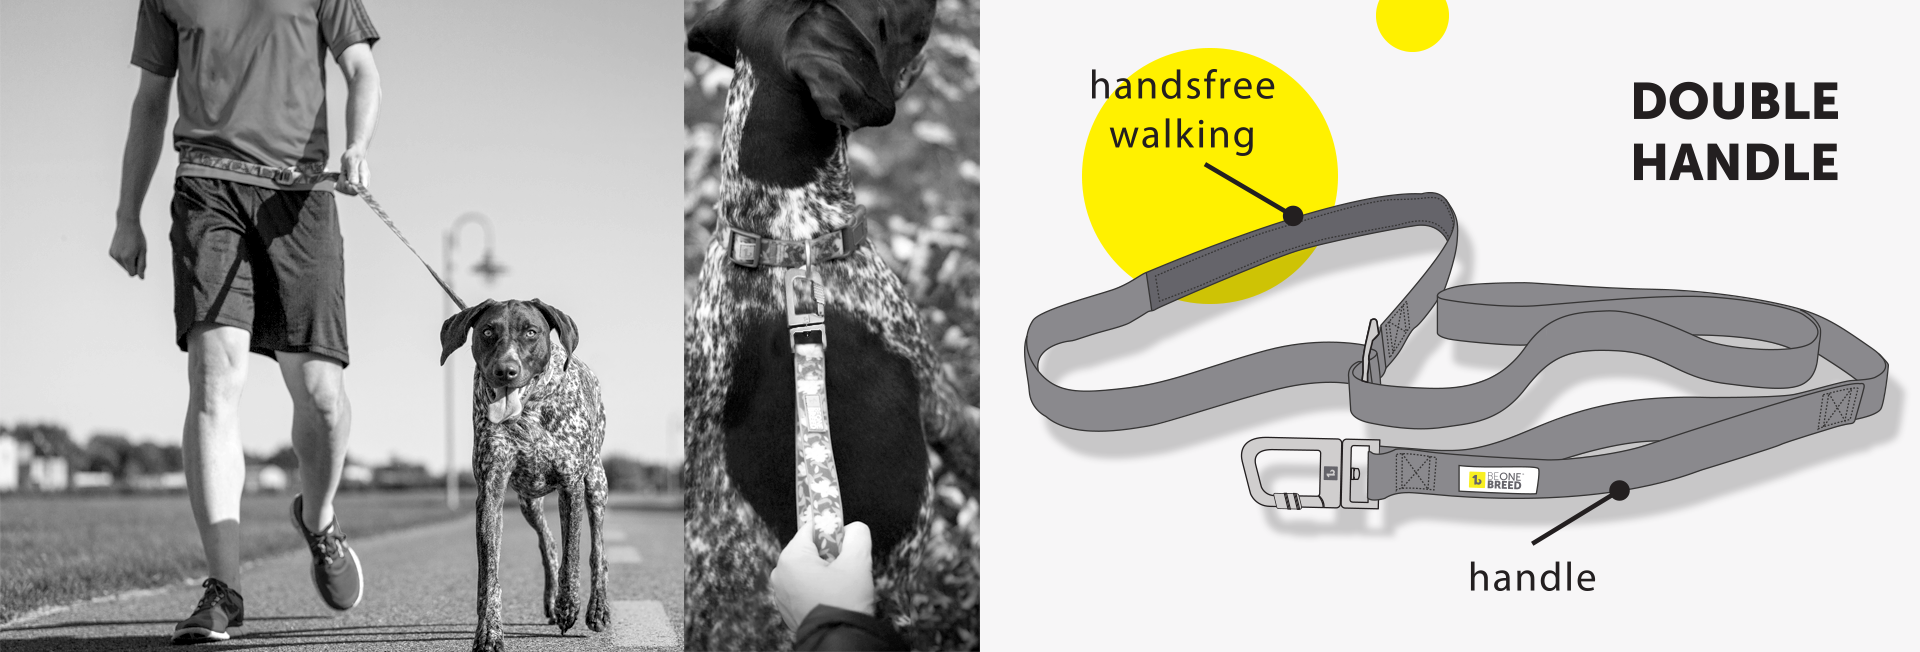 option-double-handle-5'-leash-for-dogs-english